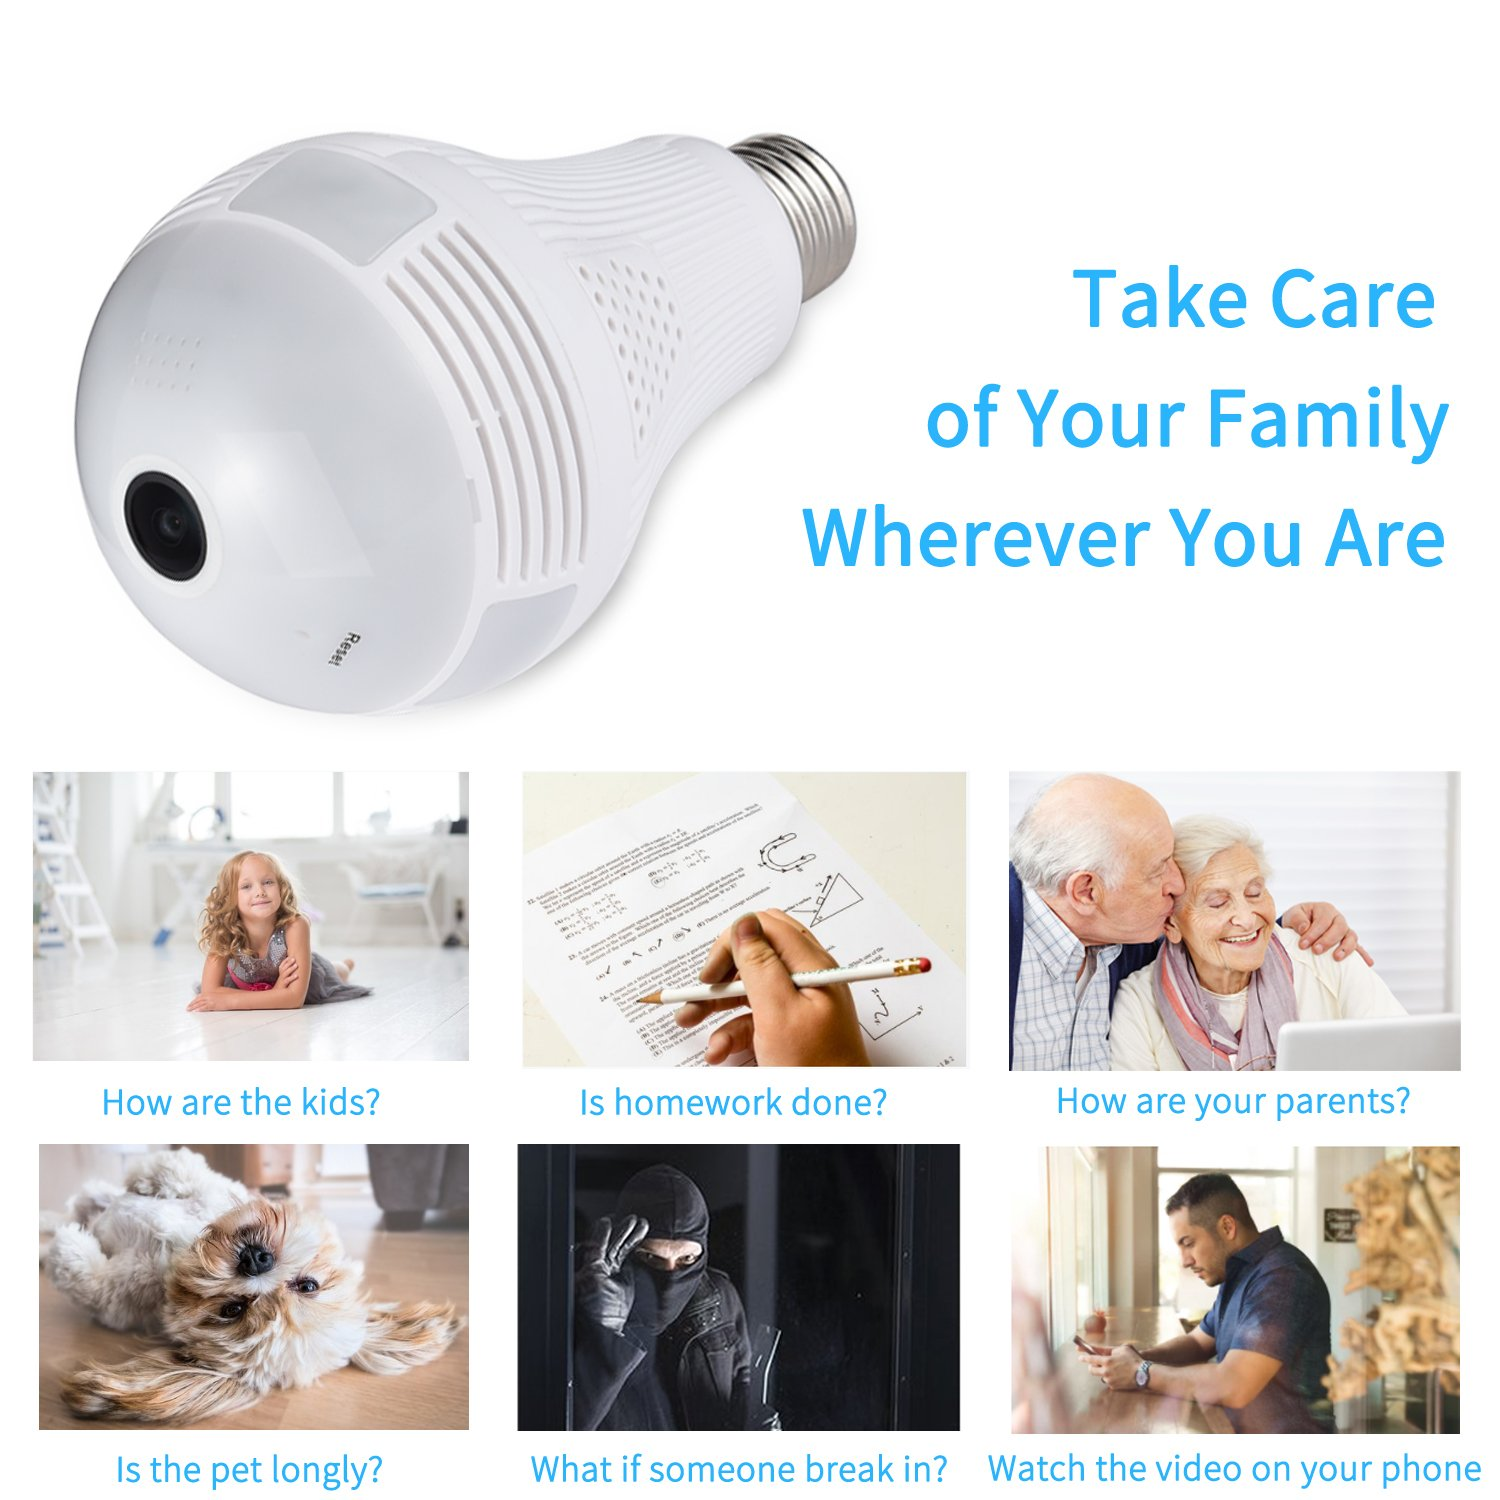 360 Degree Panoramic Camera WiFi IP Bulb Camera 960P Fisheye Lens Home Security Camera System Wireless Camera for Kids & Pets Monitor with iOS/Android App Easy Installation for Large Area Monitoring by Mykit (Image #6)